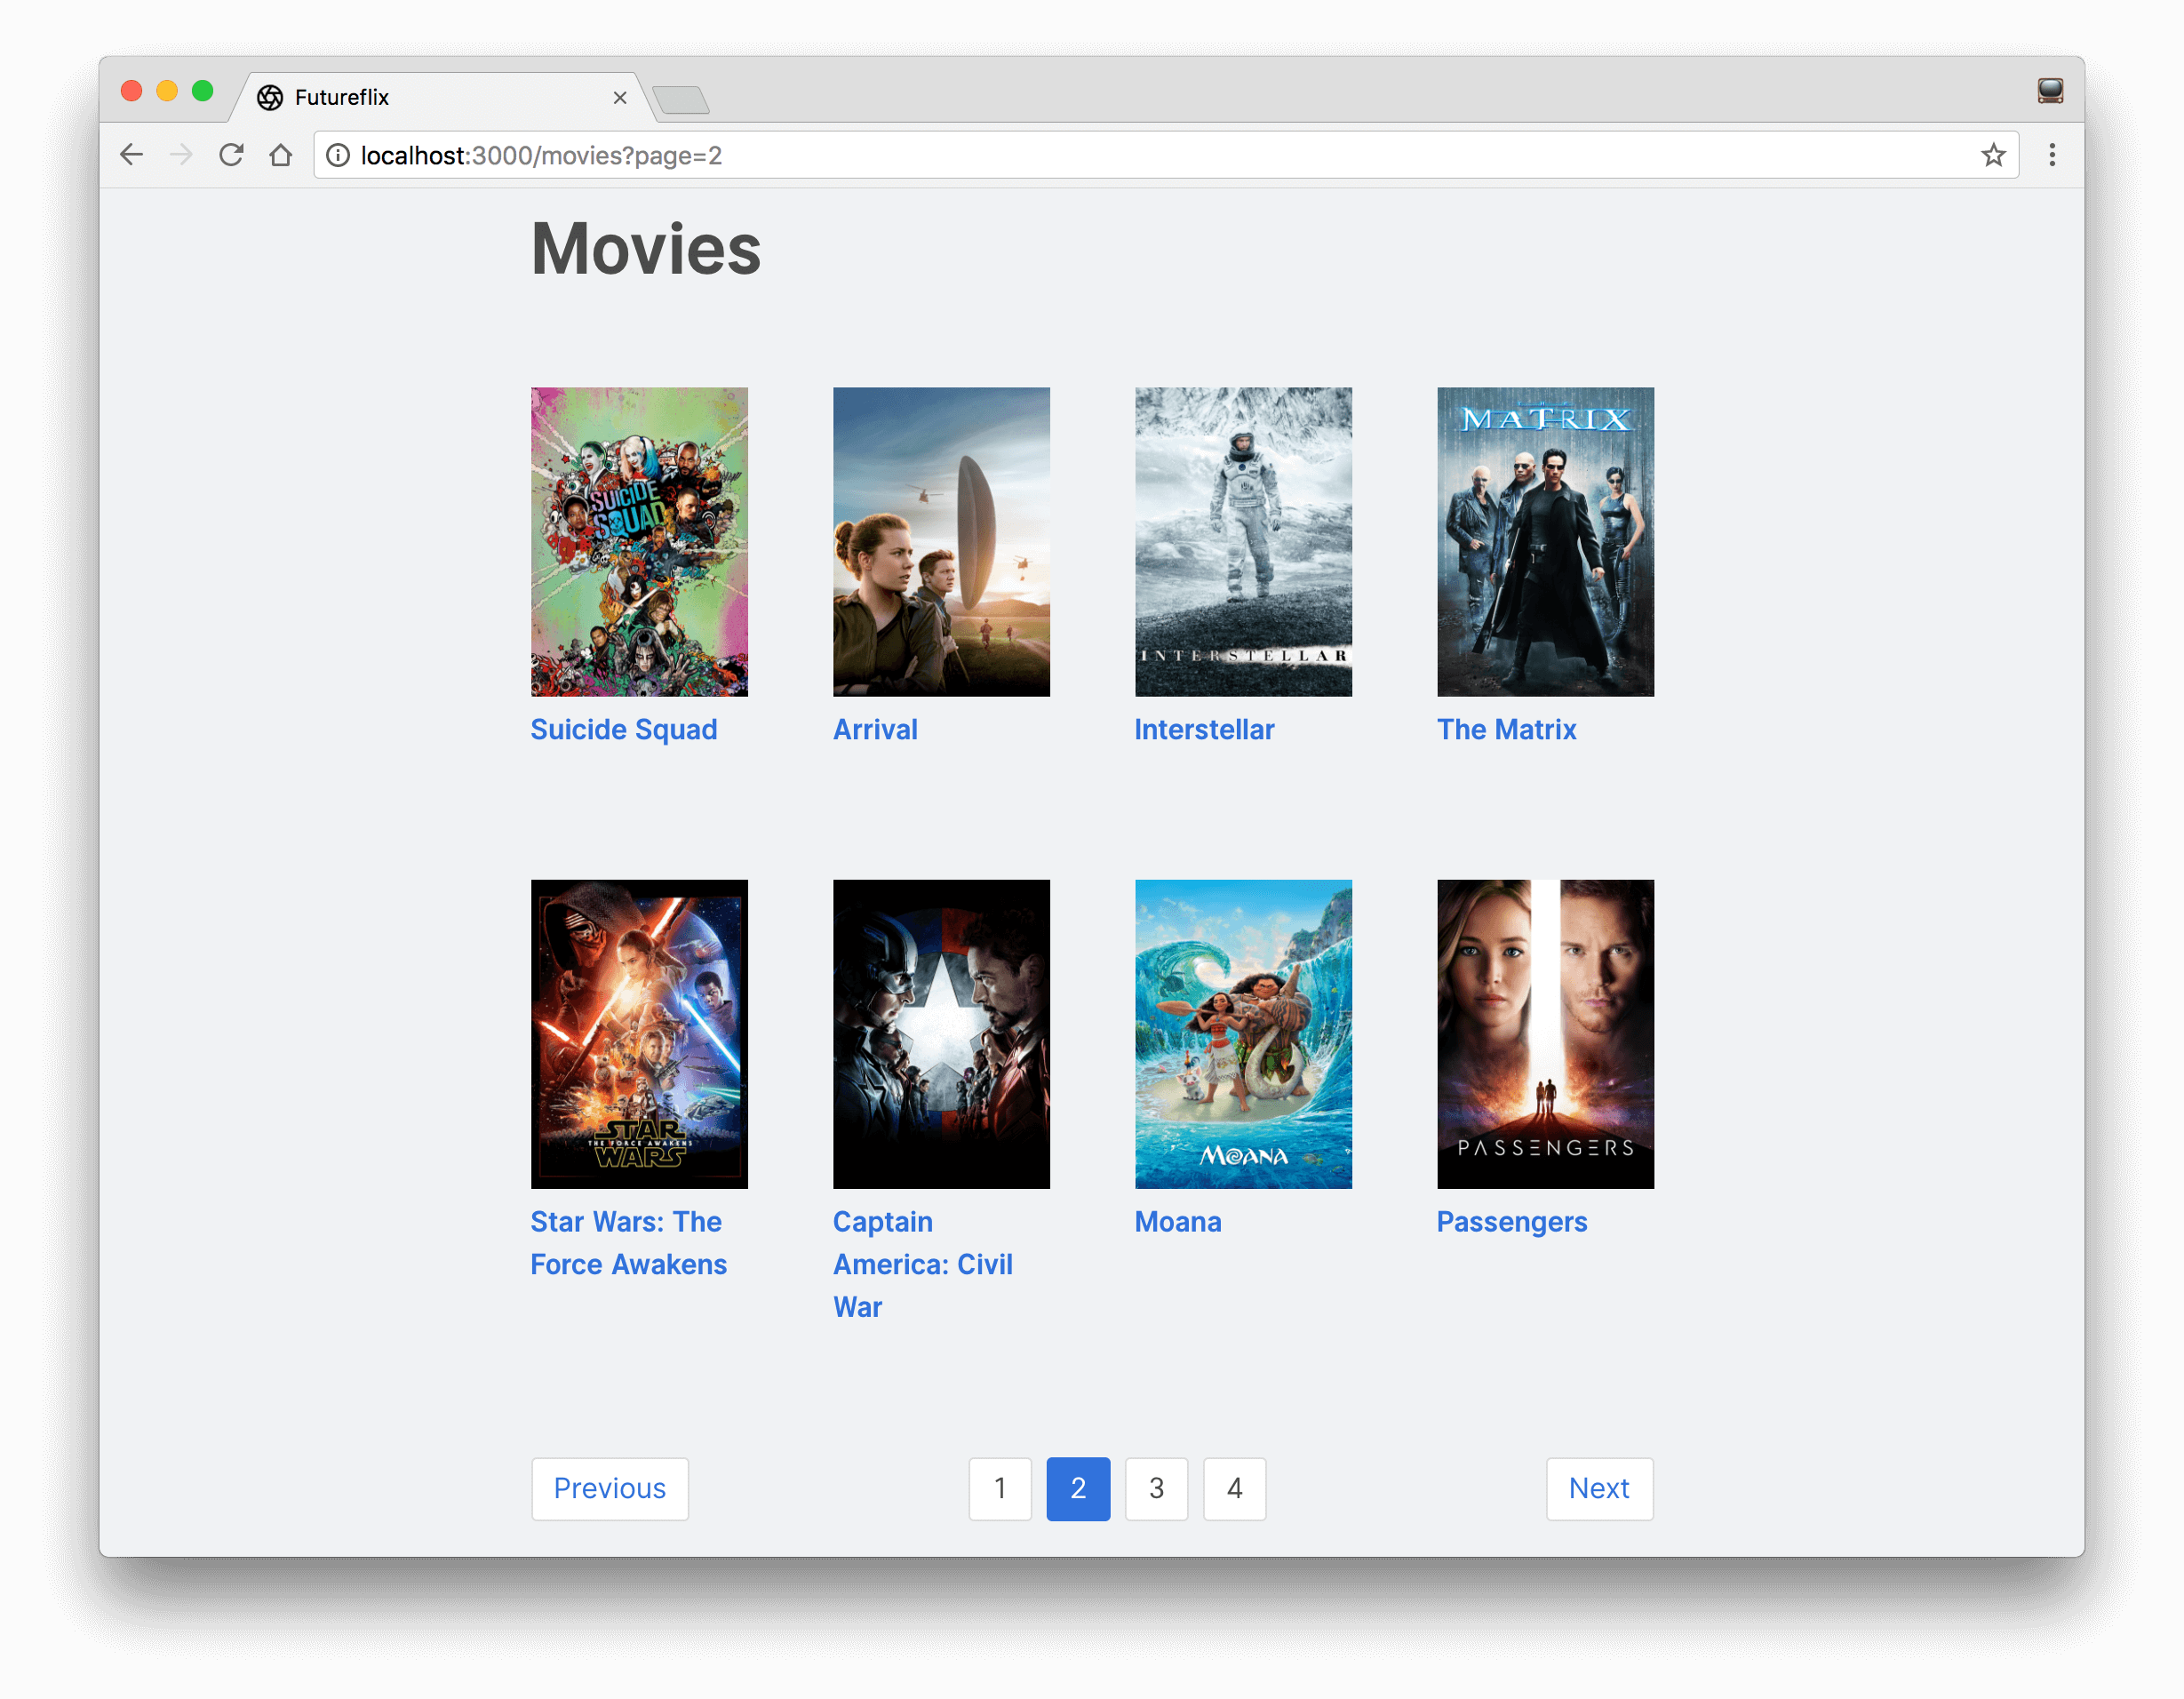 learn hapi — Implementing Pagination for Movies